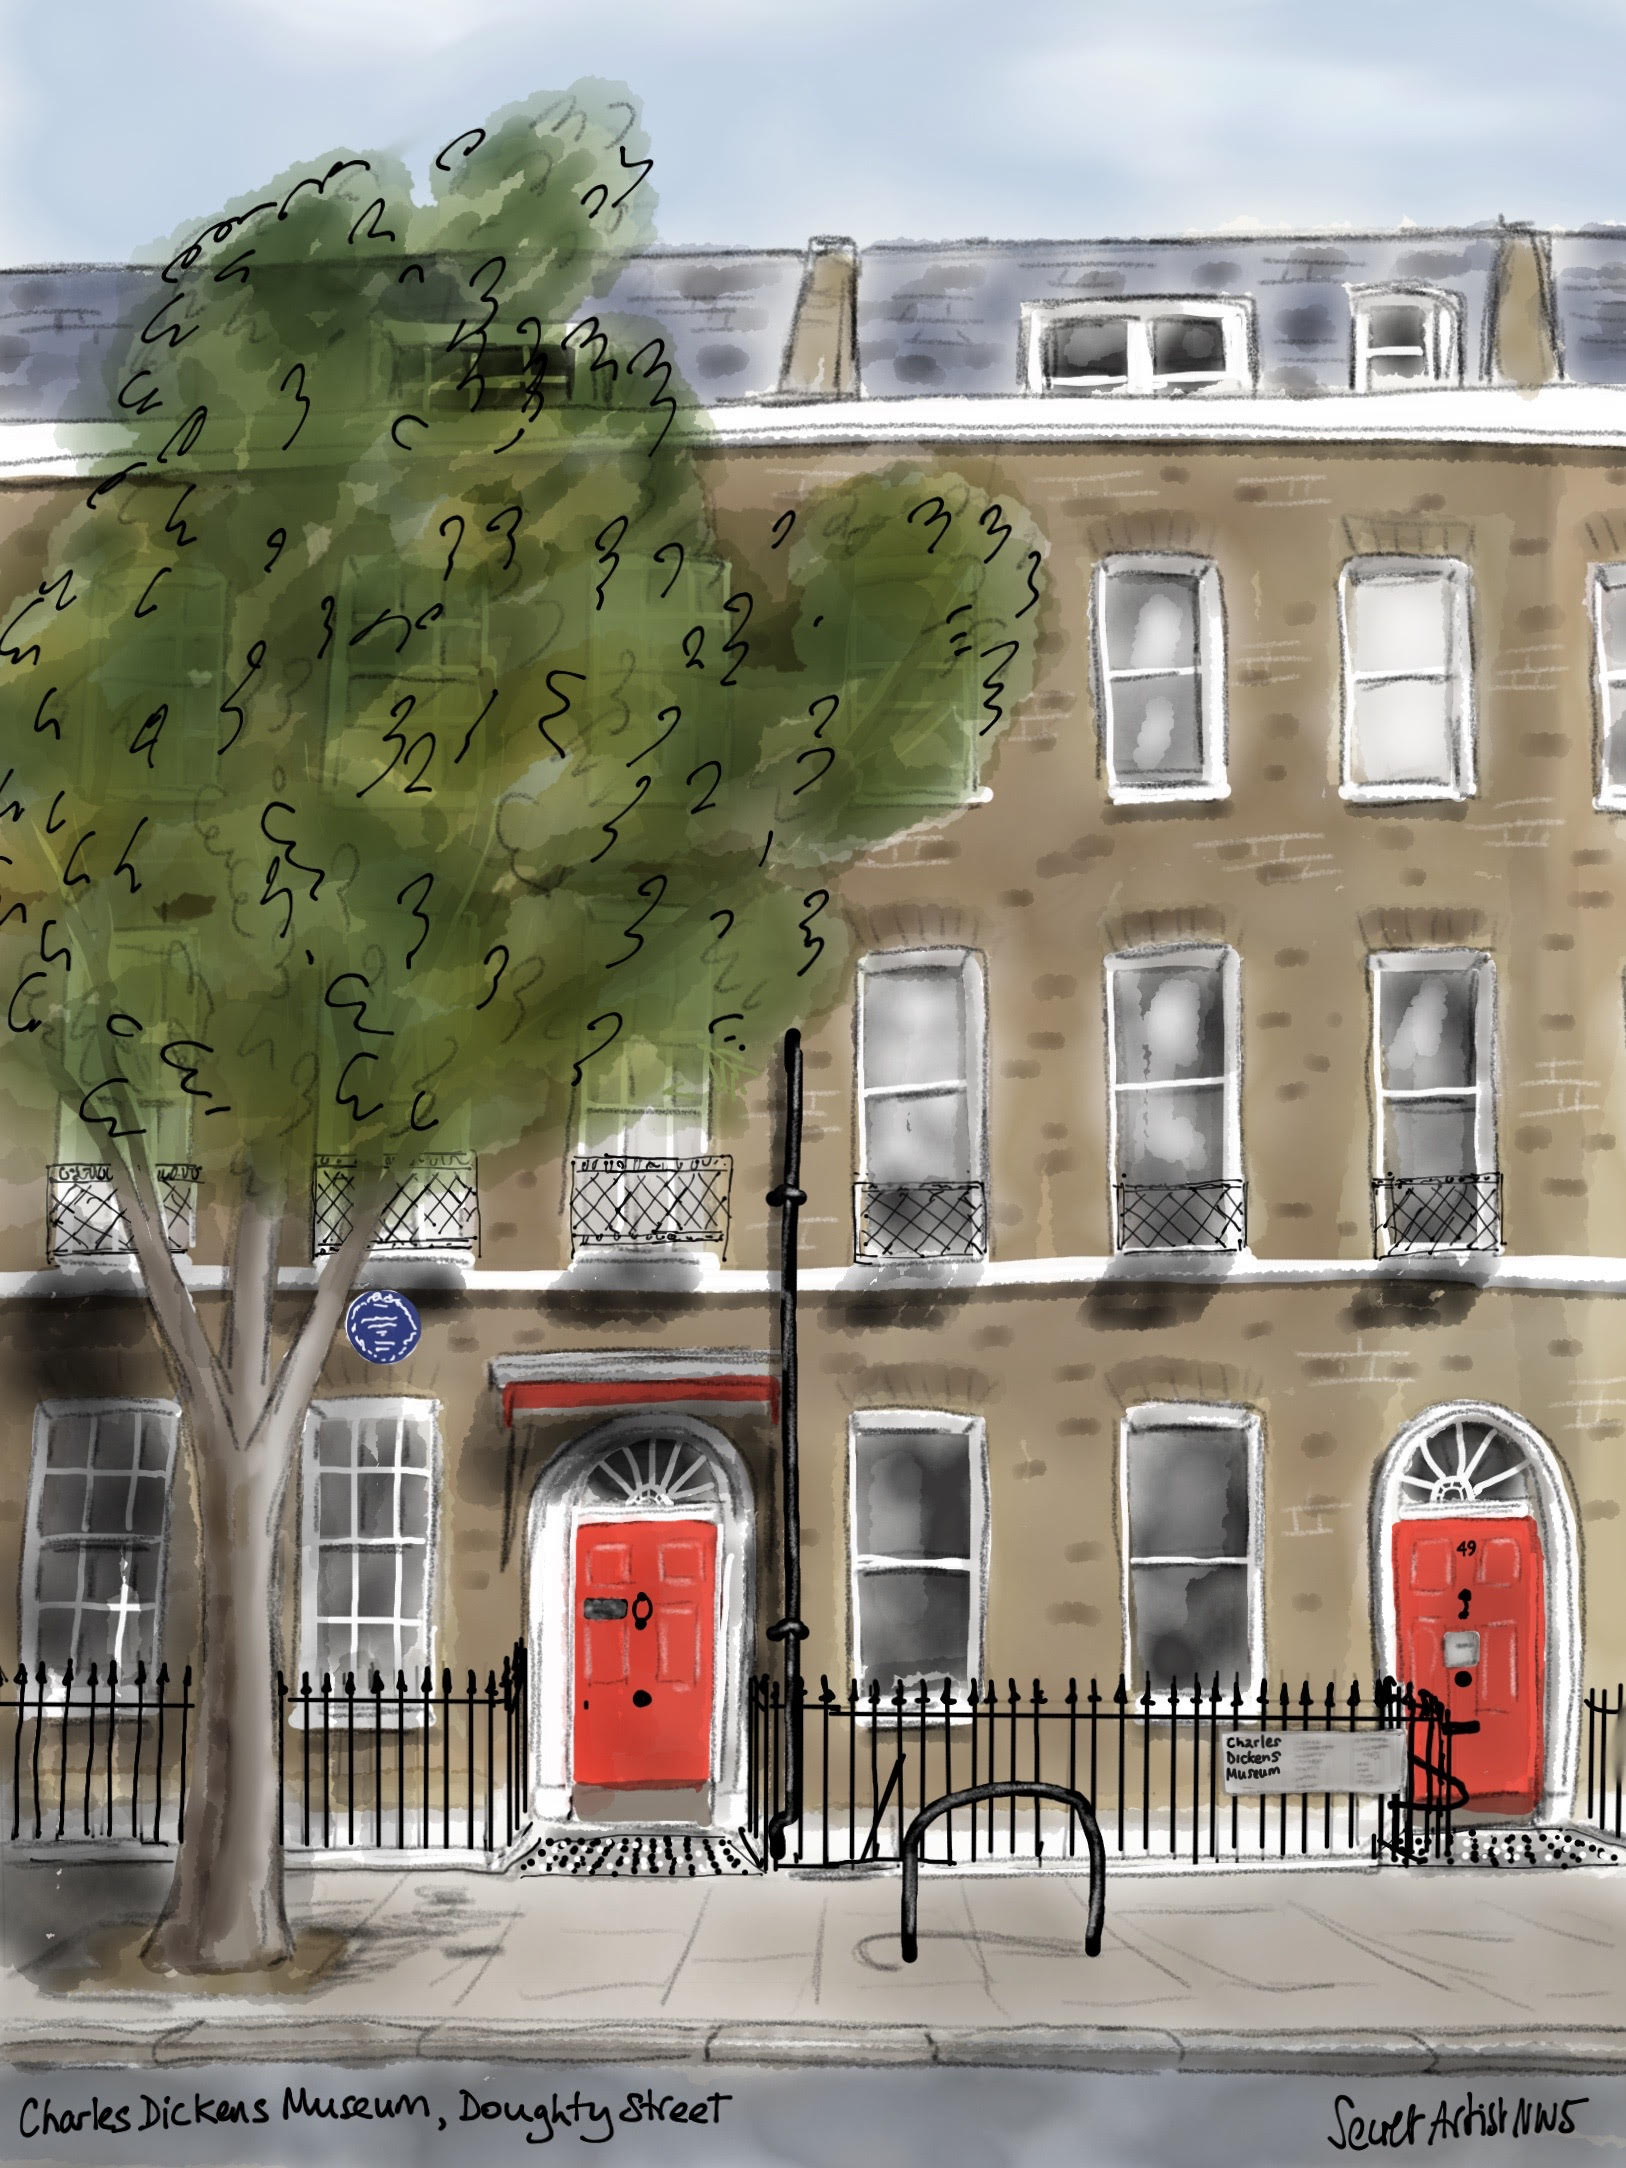 Charles Dickens house 2020